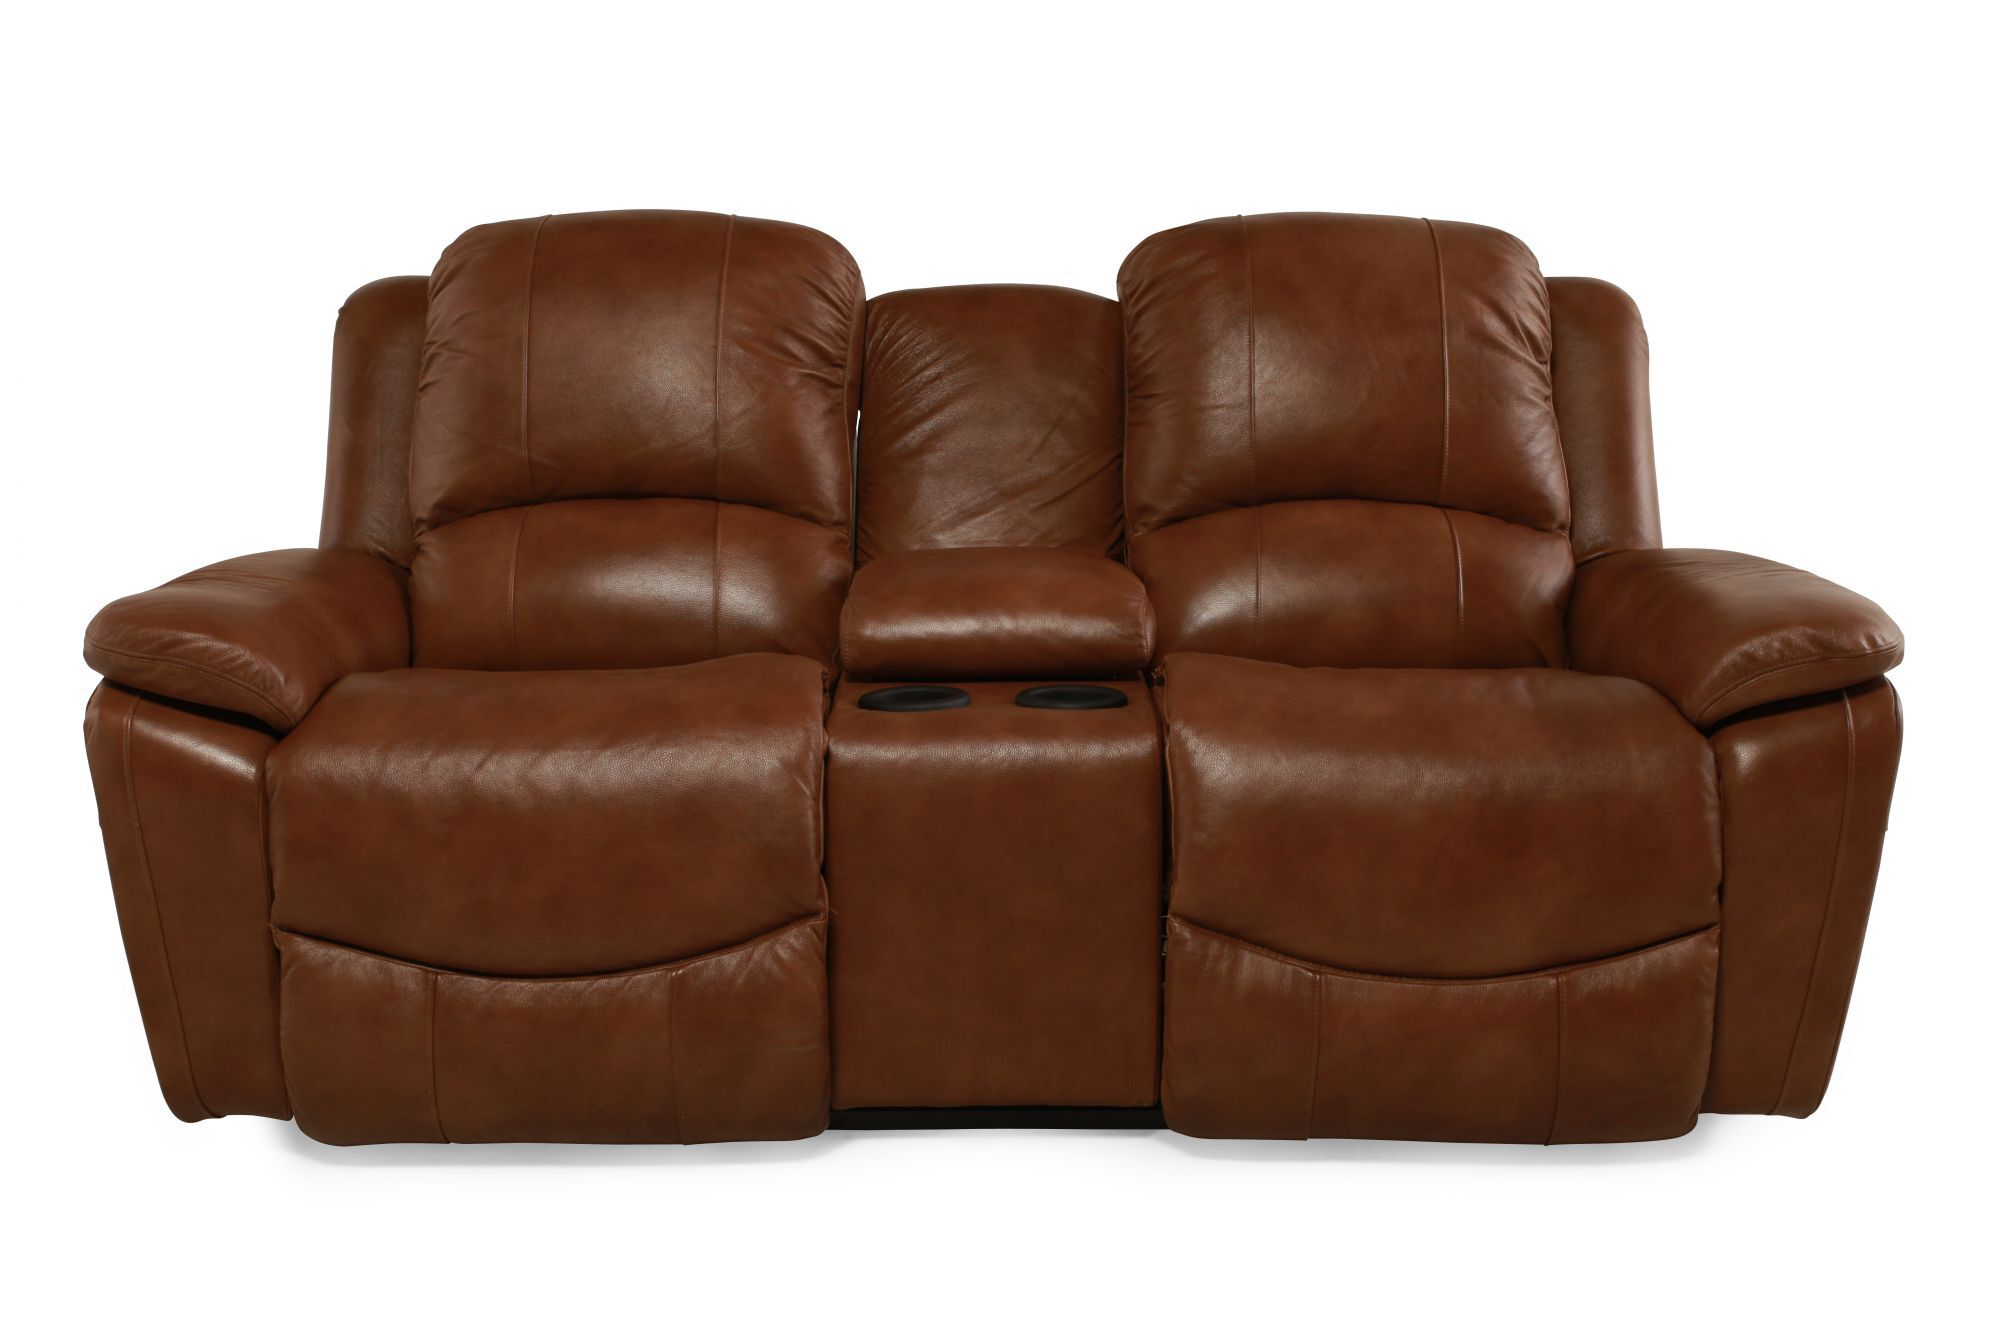 La-Z-Boy Owen Wheat Leather Double Reclining with Console  sc 1 st  Mathis Brothers : lazy boy owen recliner - islam-shia.org